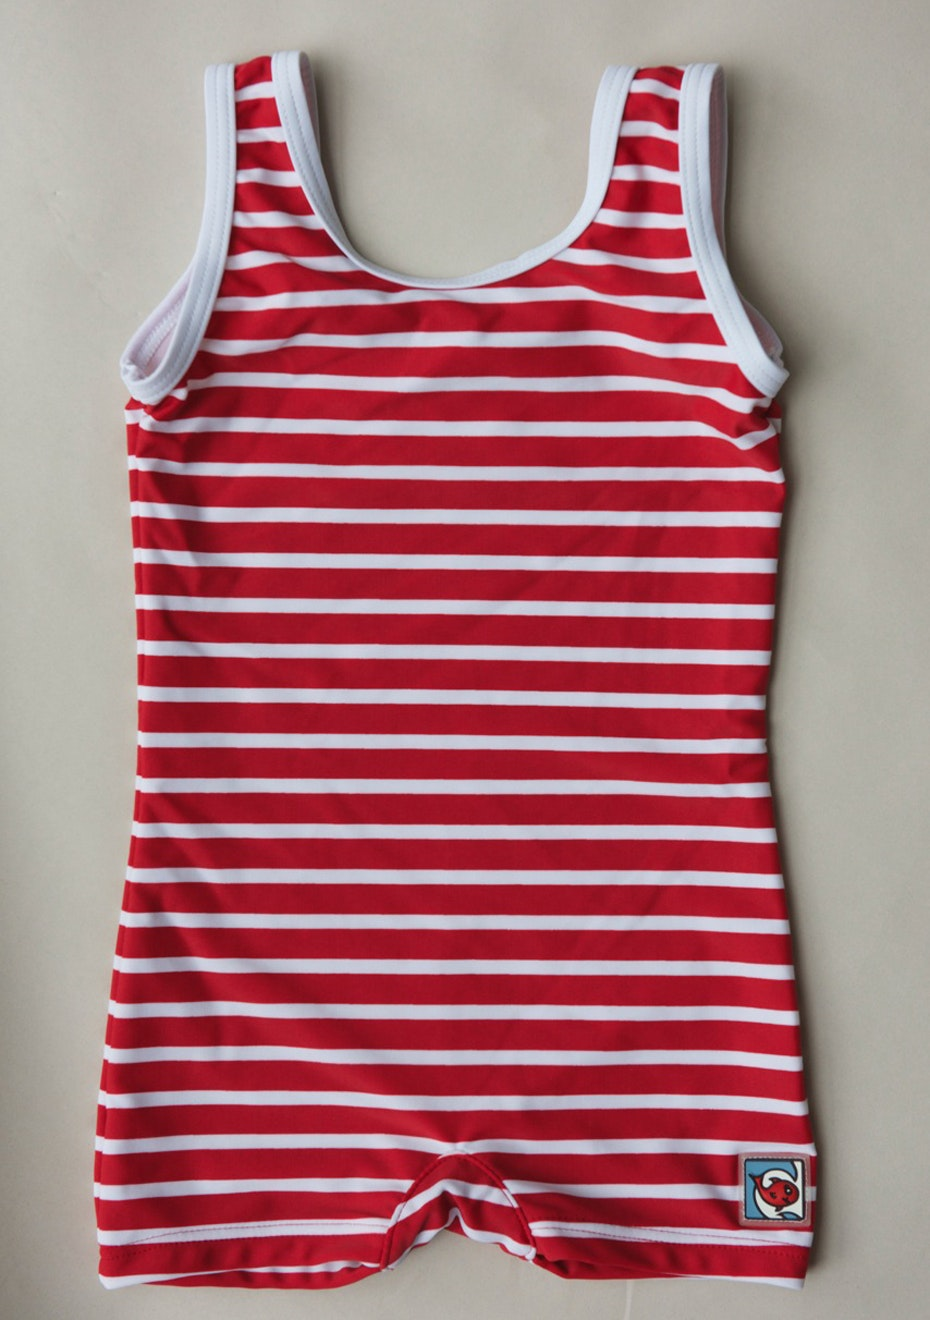 Little Red Fish - Classic Bather Swimsuit - Red & White Stripe